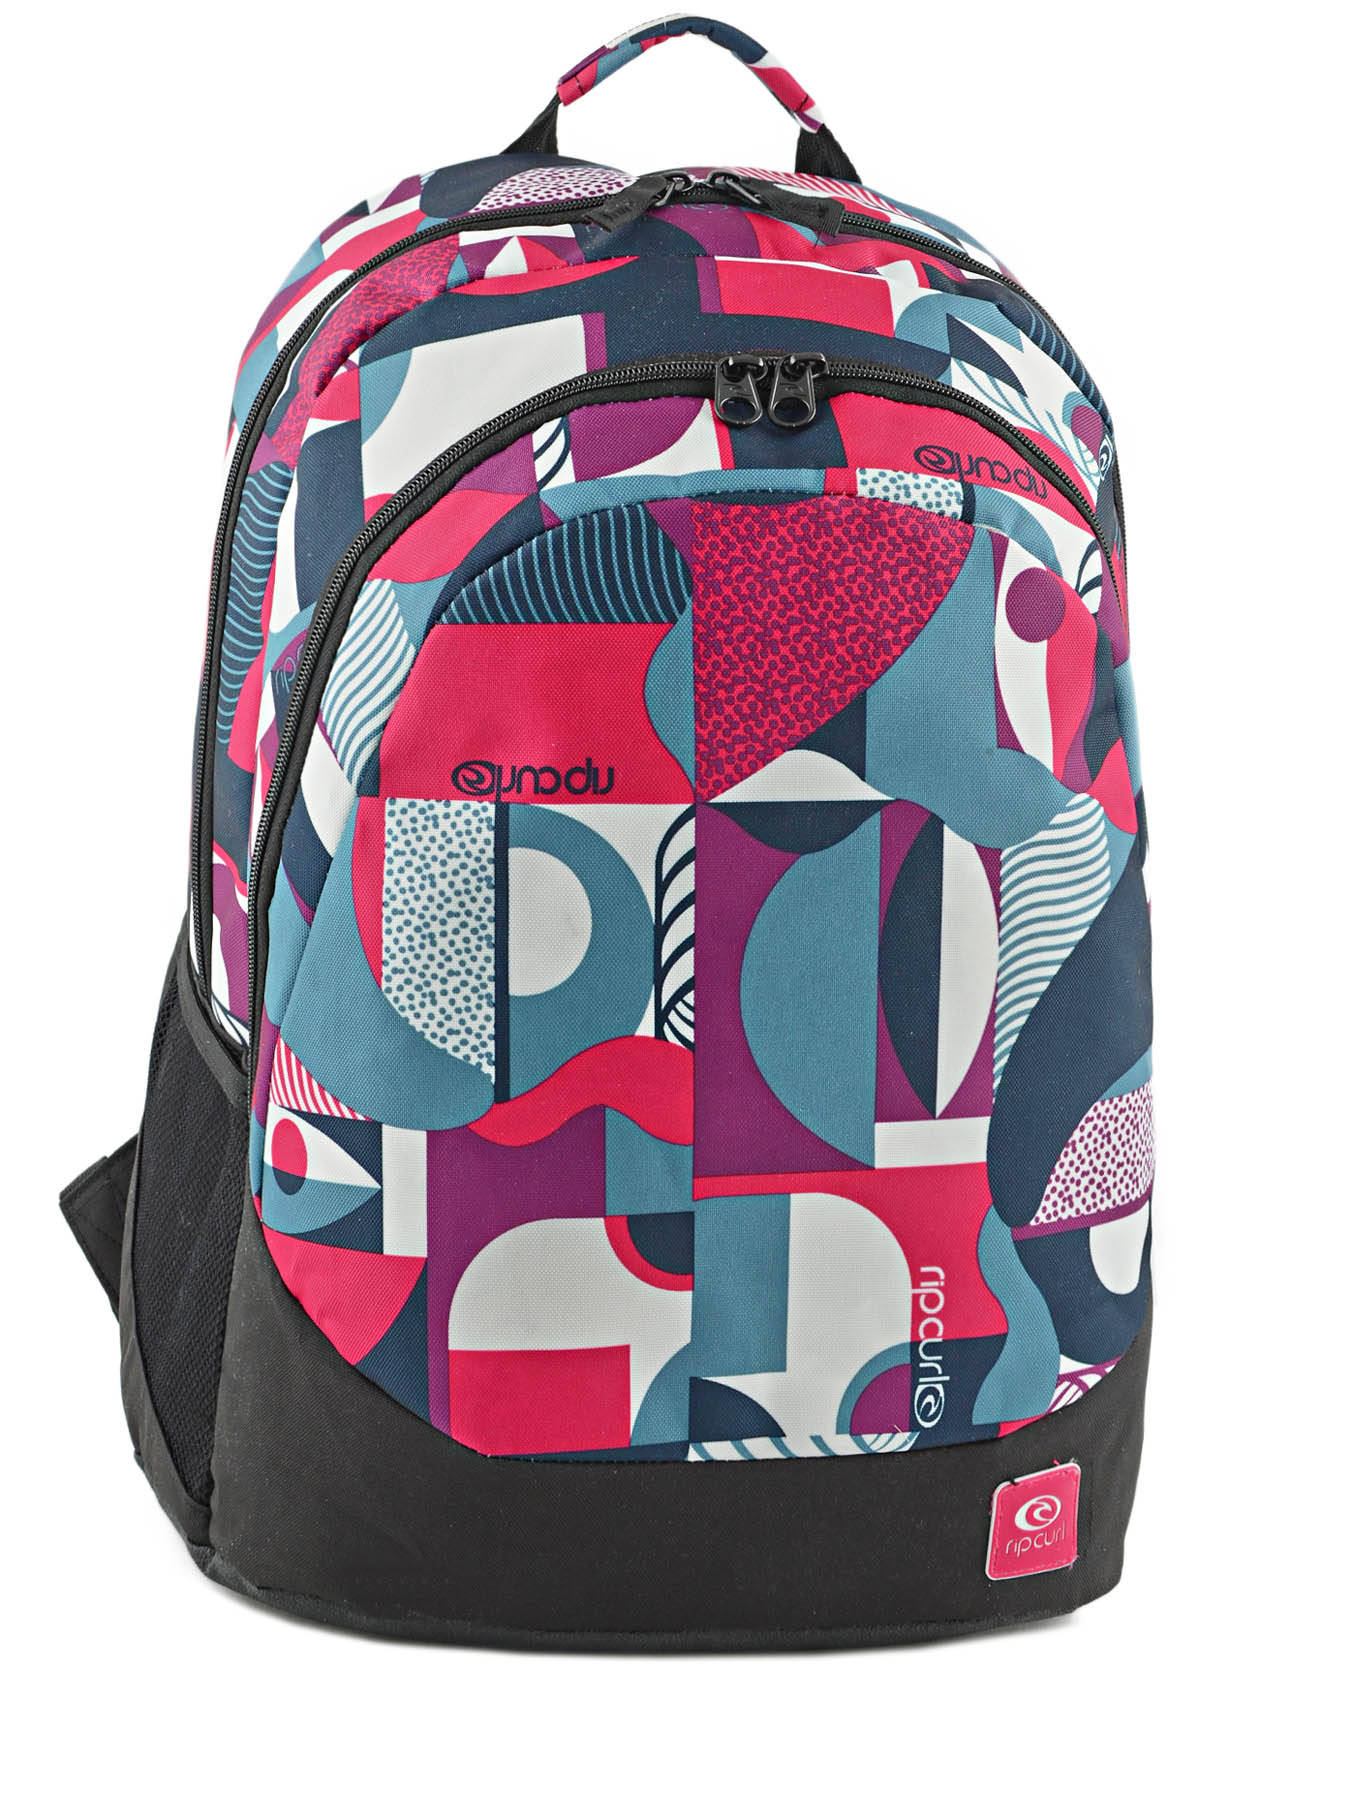 rip curl backpack paola best prices. Black Bedroom Furniture Sets. Home Design Ideas